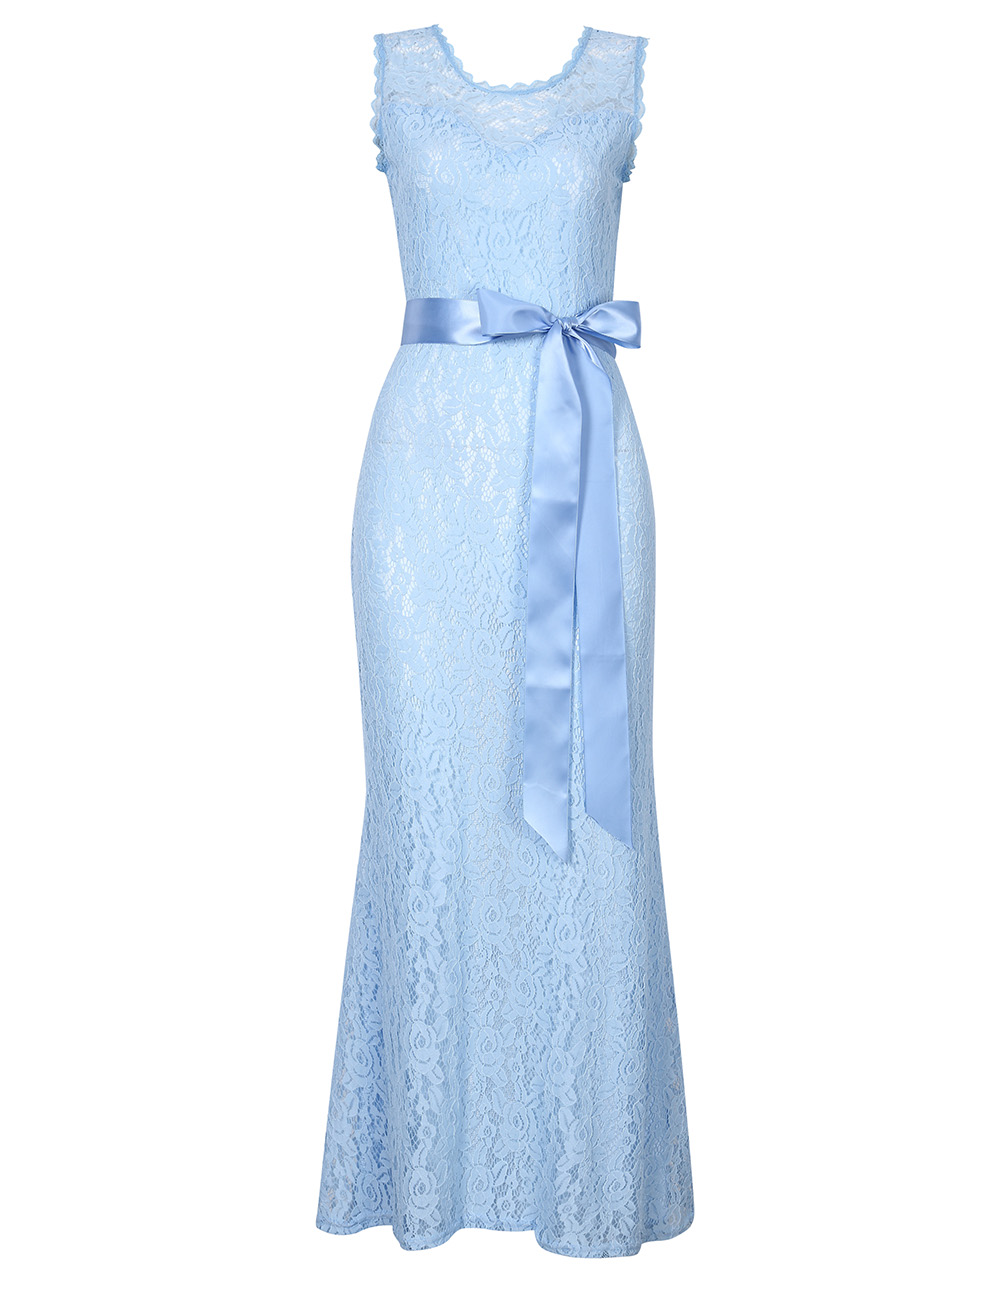 Sleeveless Sliming Halter Floral Lace Scoop Neck Maxi Dress